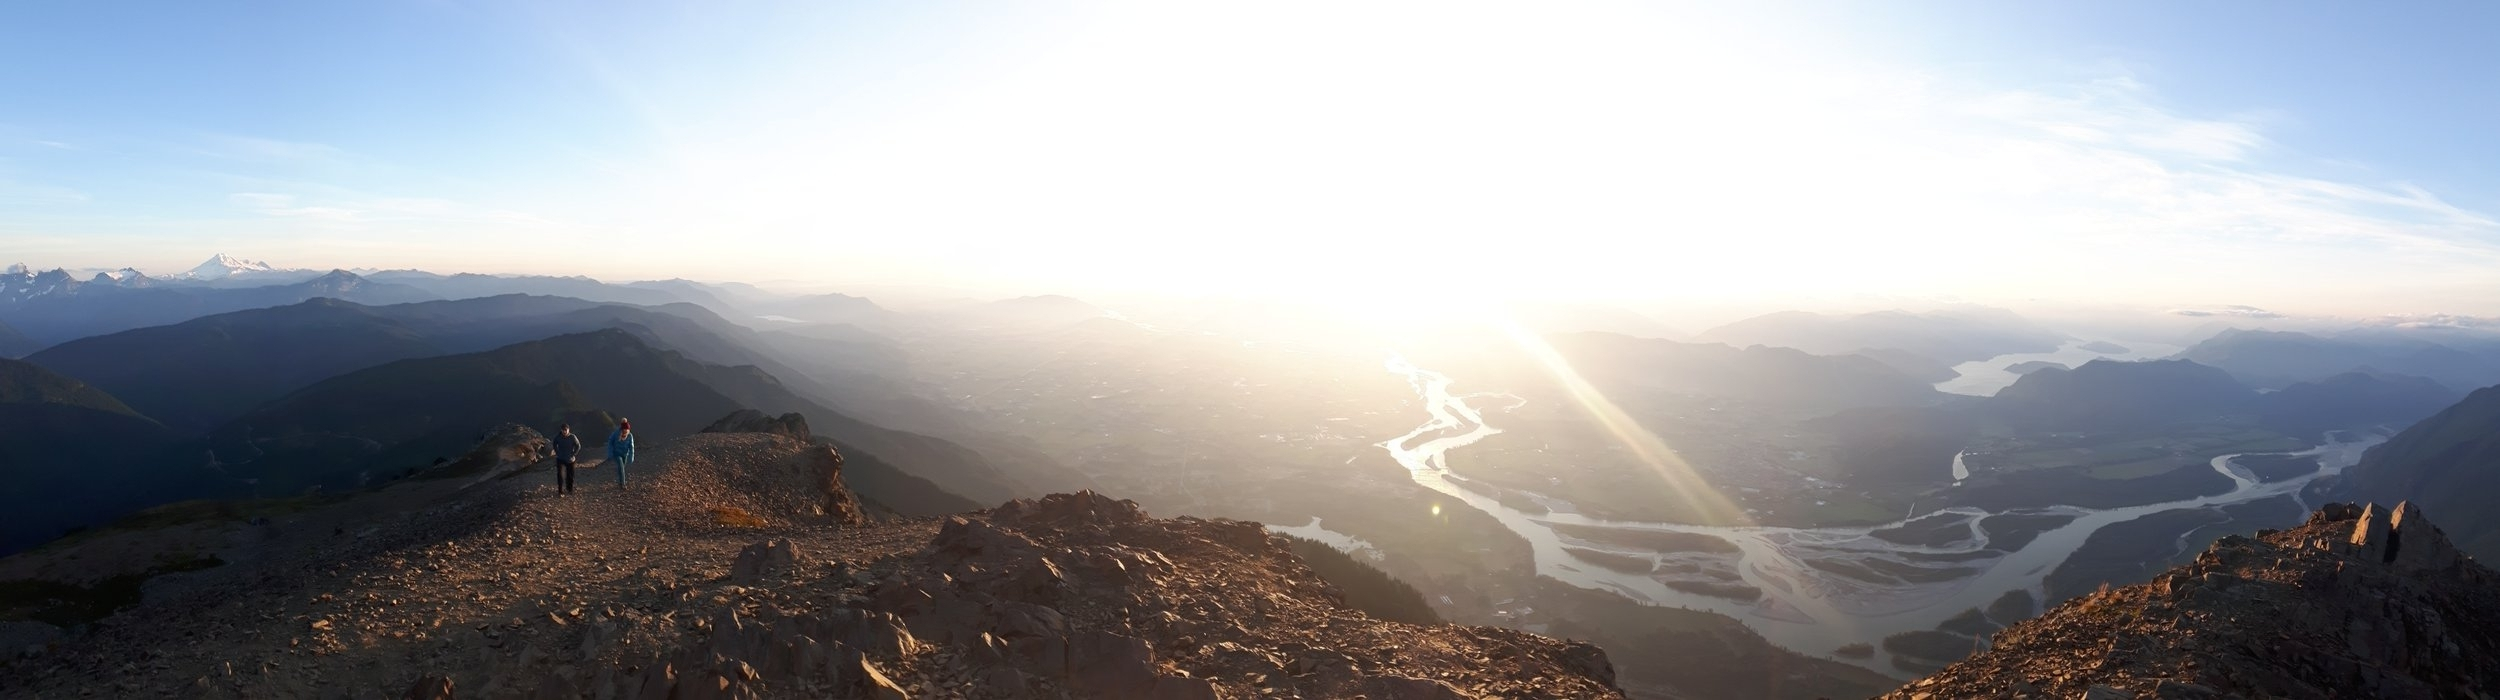 We are proudly located in the heart of the Fraser Valley, BC. Panoramic view from atop Mt. Cheam. Natalie Jones